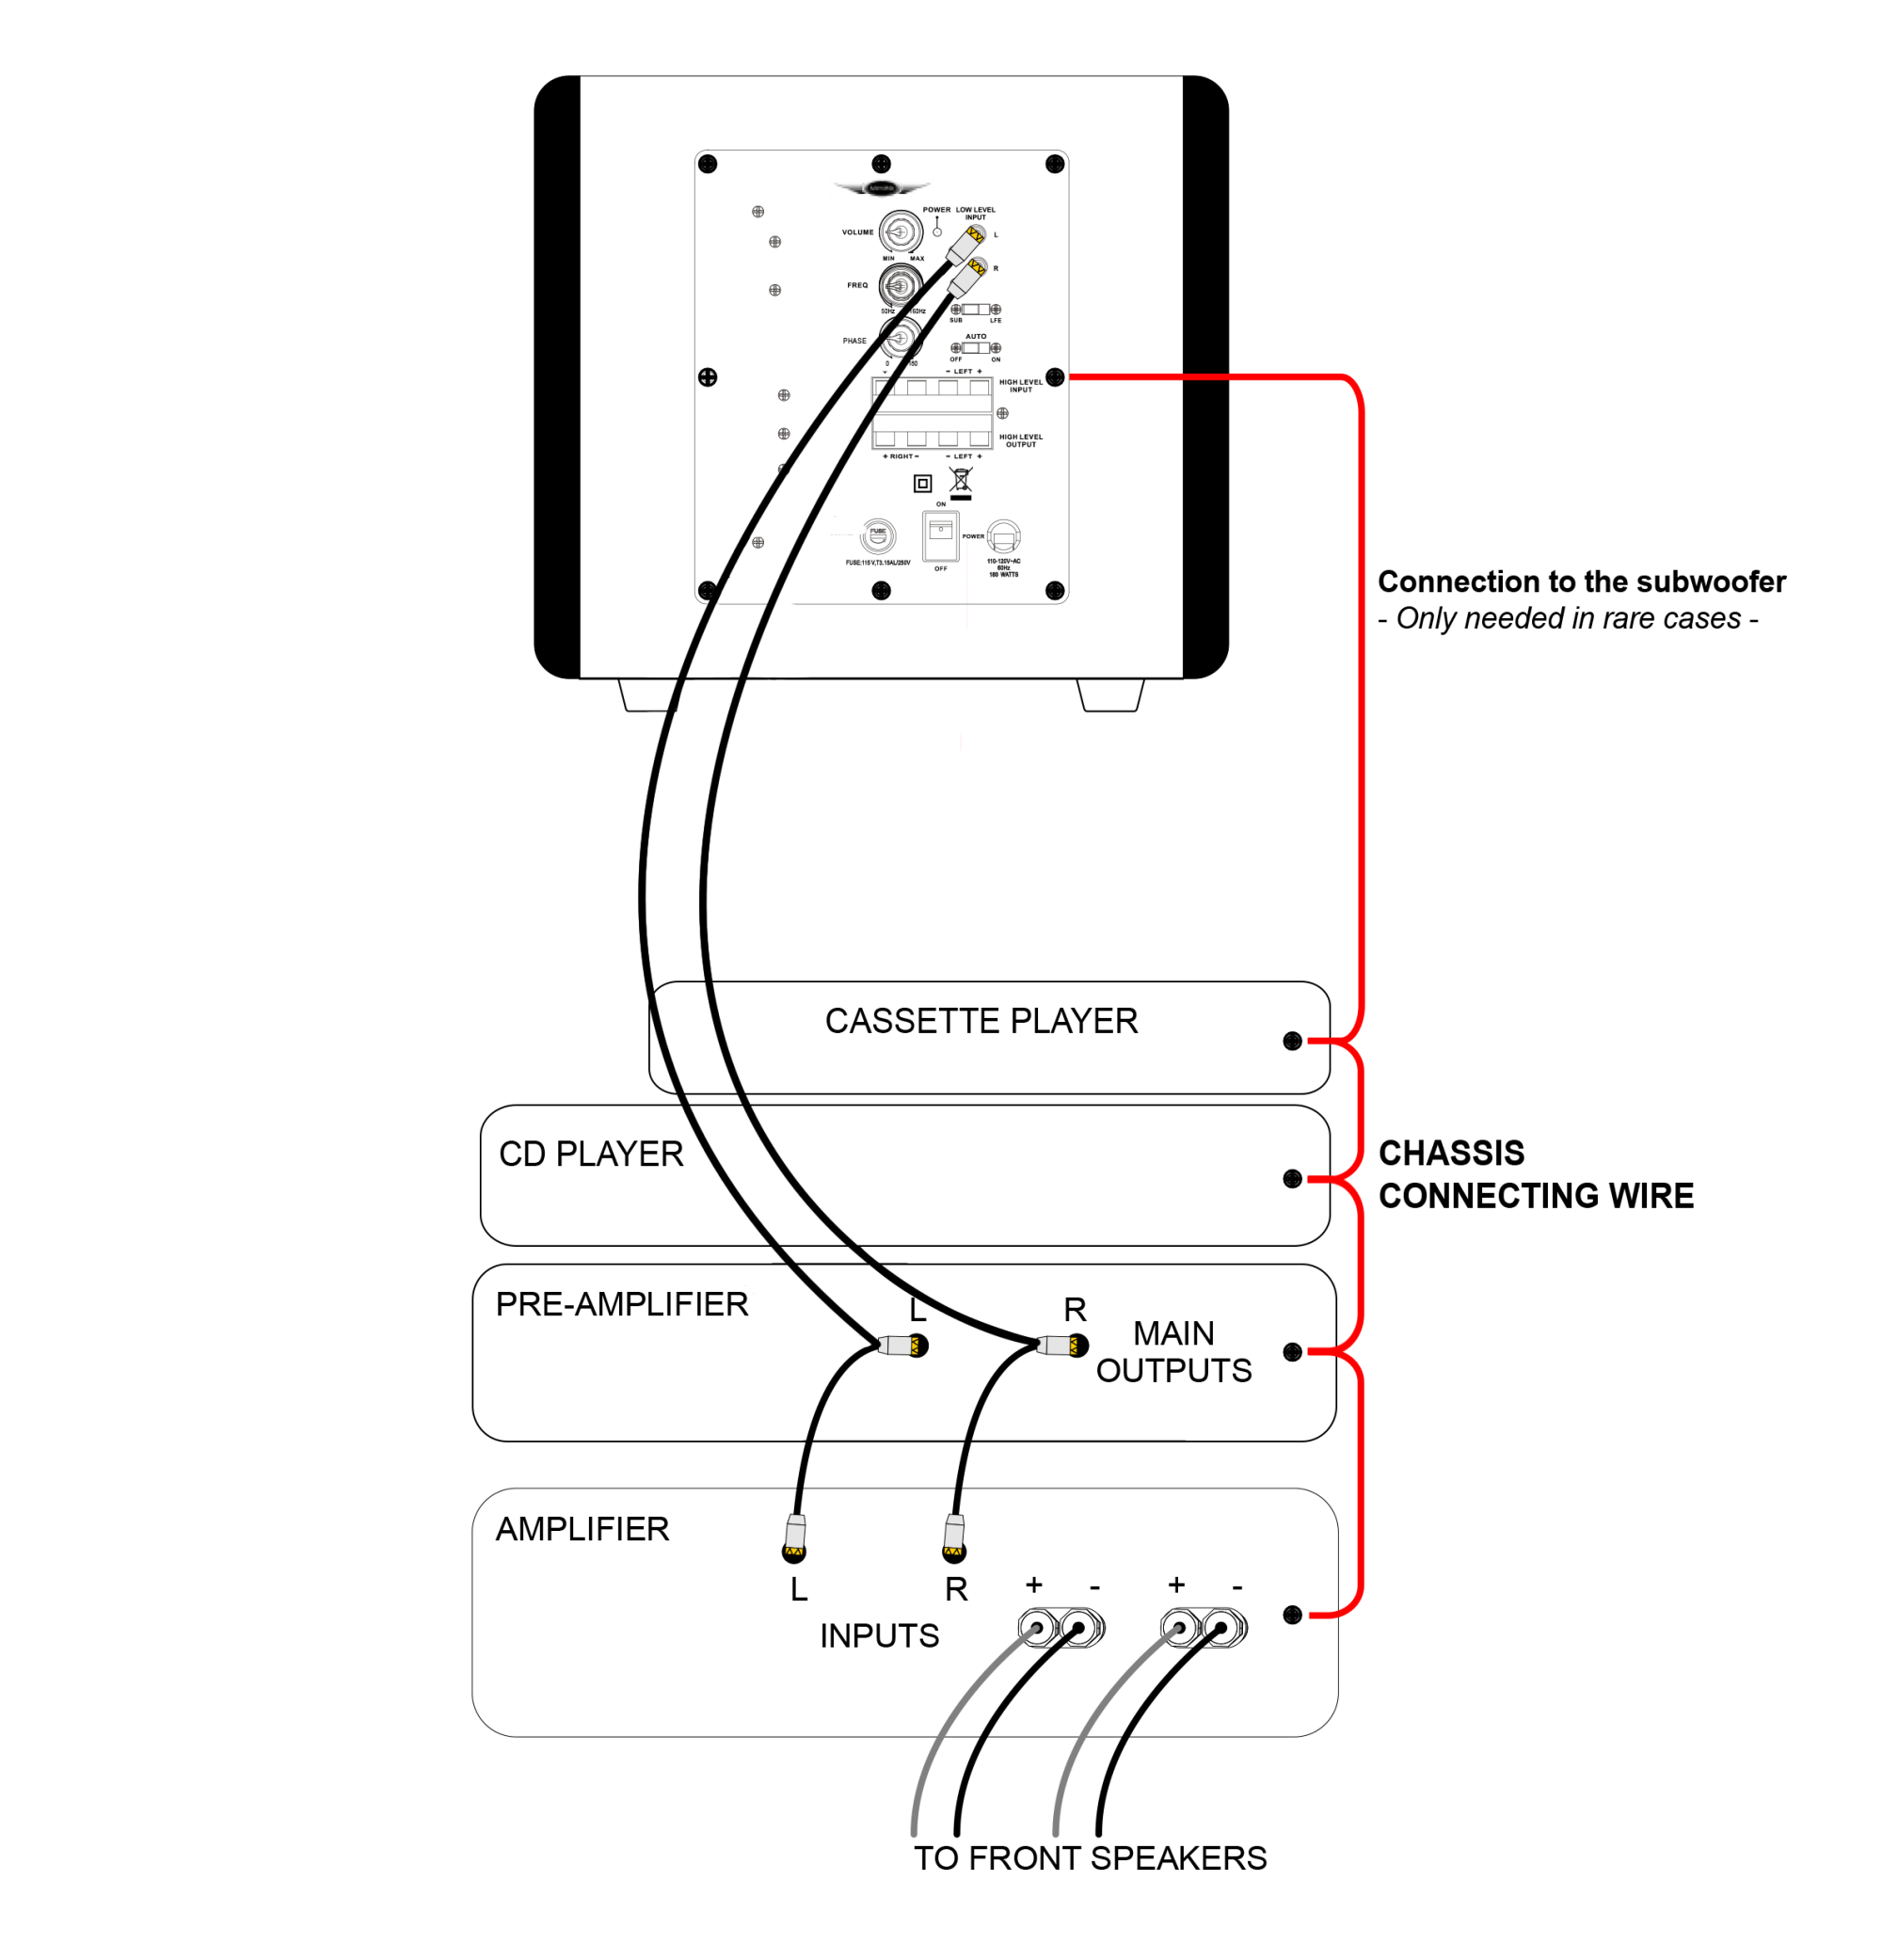 hight resolution of  fig 1 illustration of chassis connecting wire